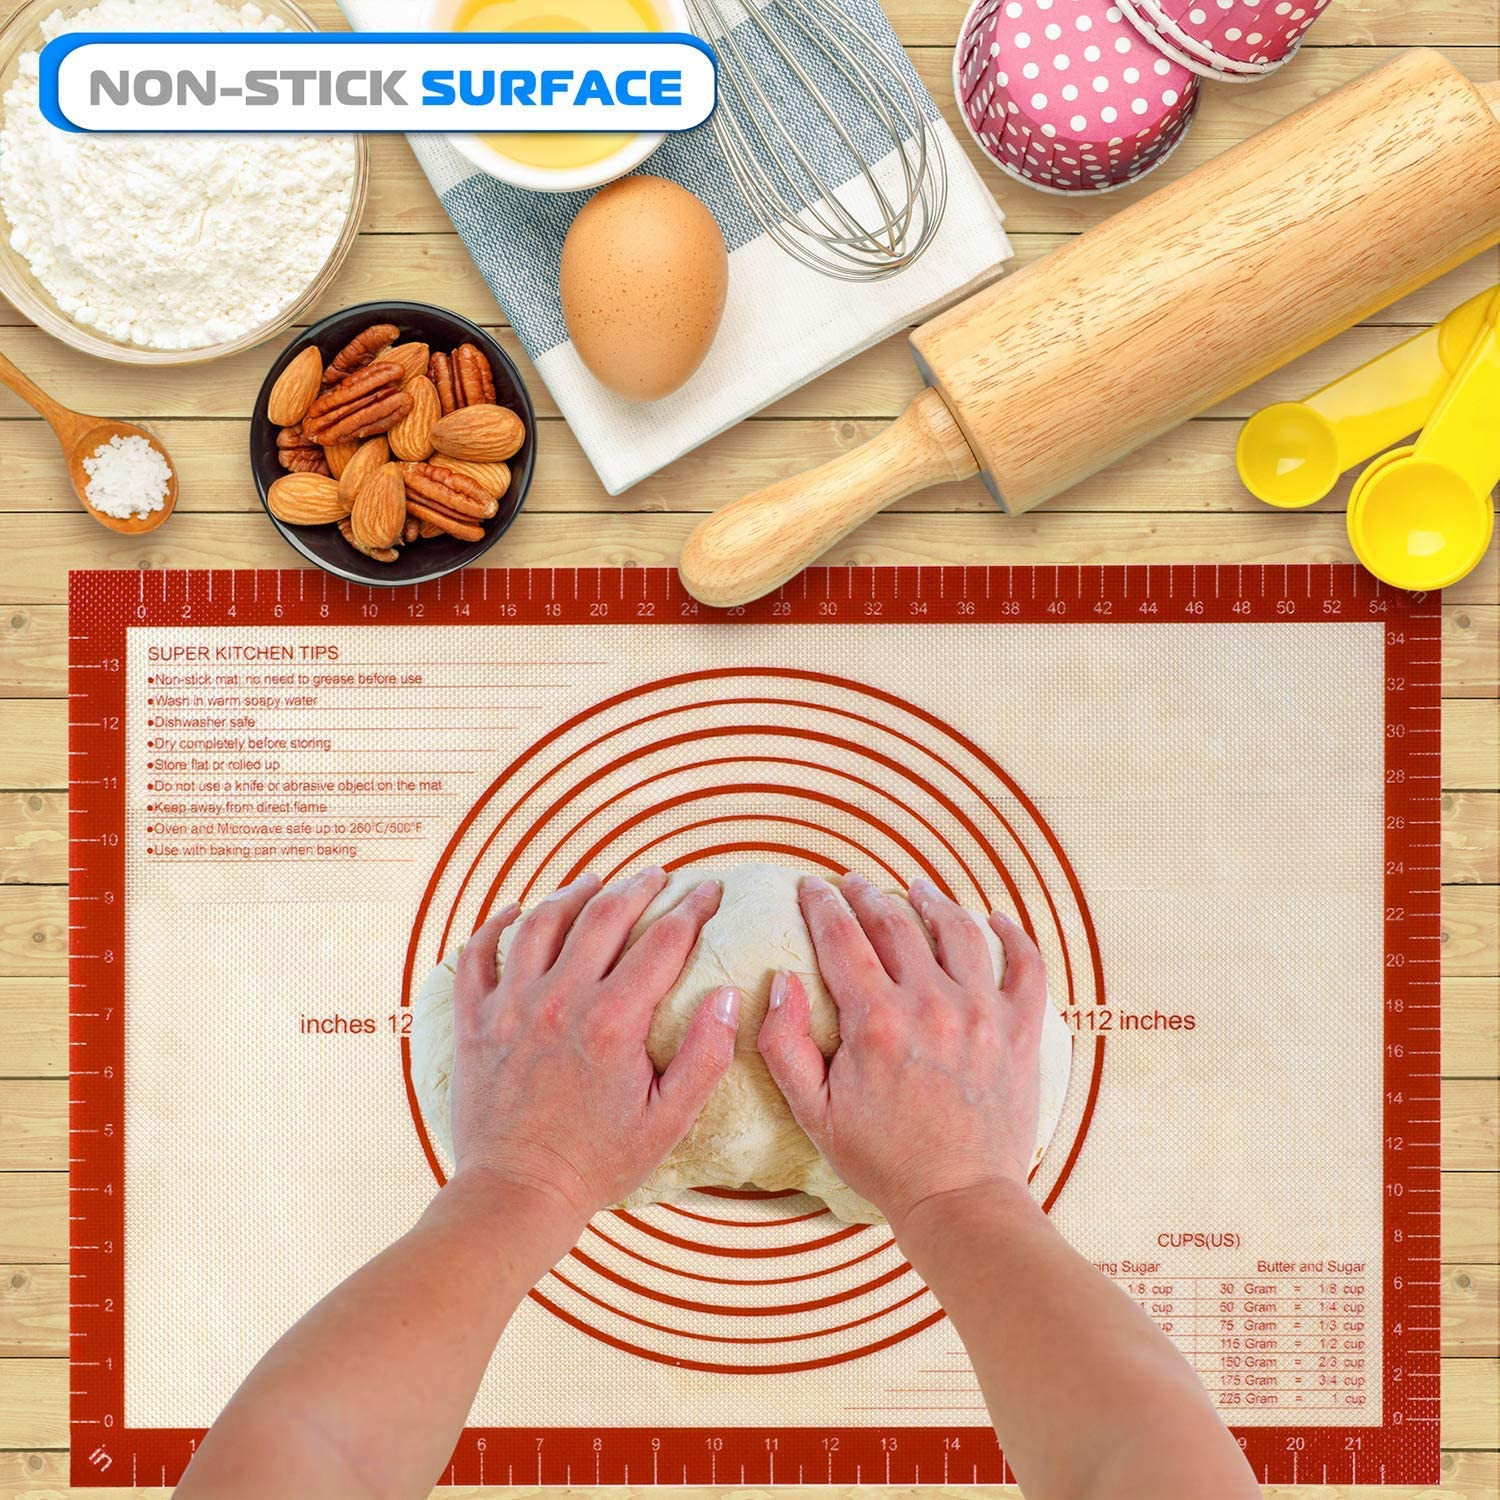 Macaron Pizza 1 Large 2 Half Pie Reusable Oven Liner Silicone Baking Mats with Measurement Non-stick Pastry Mat for Rolling Dough Kitchen Kneading Mat for Making Cookies Bread Set of 3 Sheet